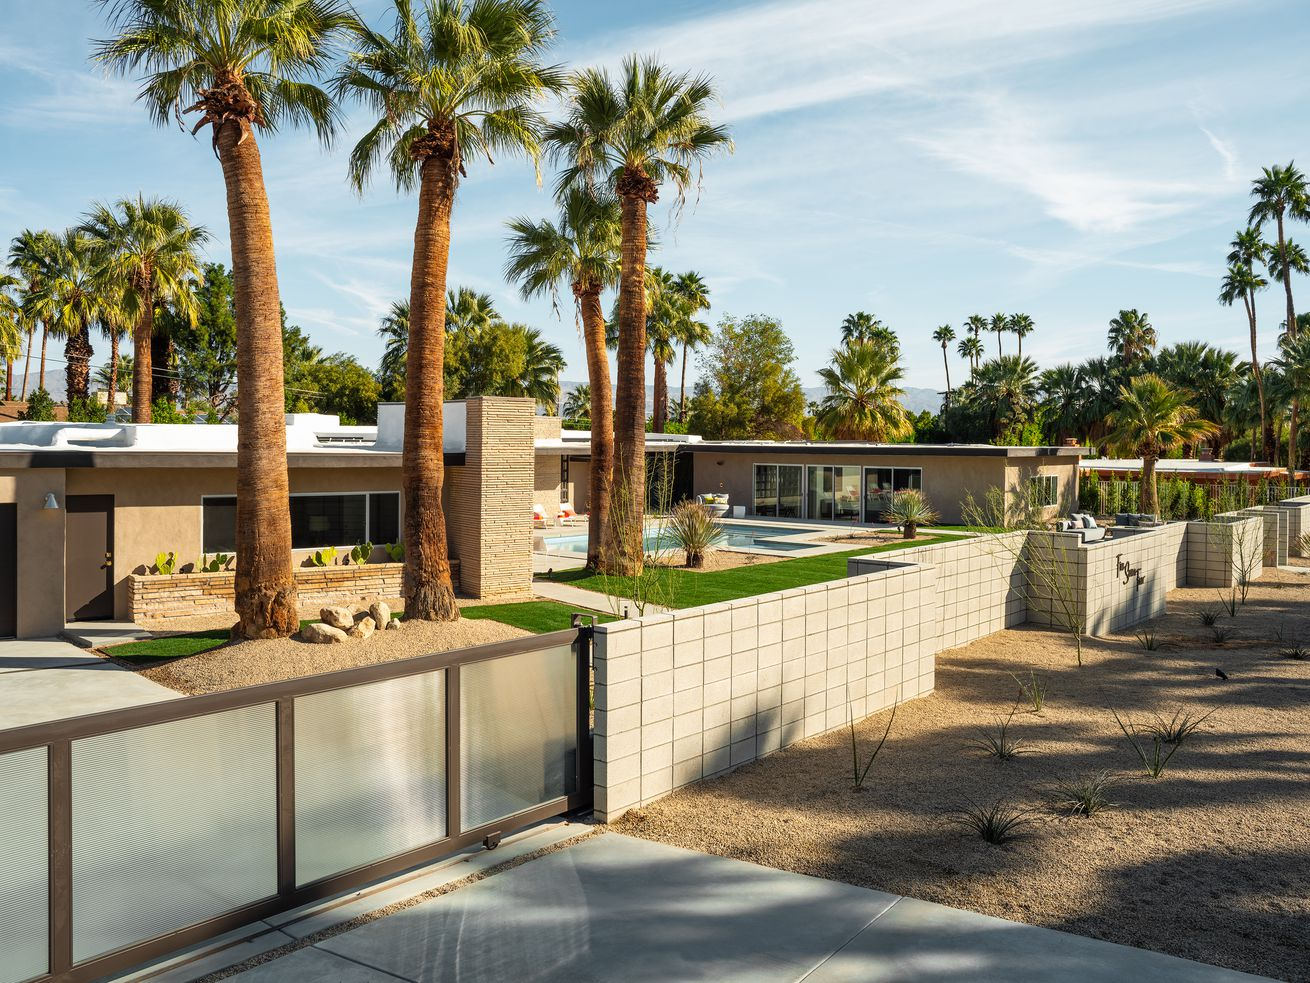 An external view of a ranch midcentury modern house, with an automatic gate, brick wall, and palm trees around.